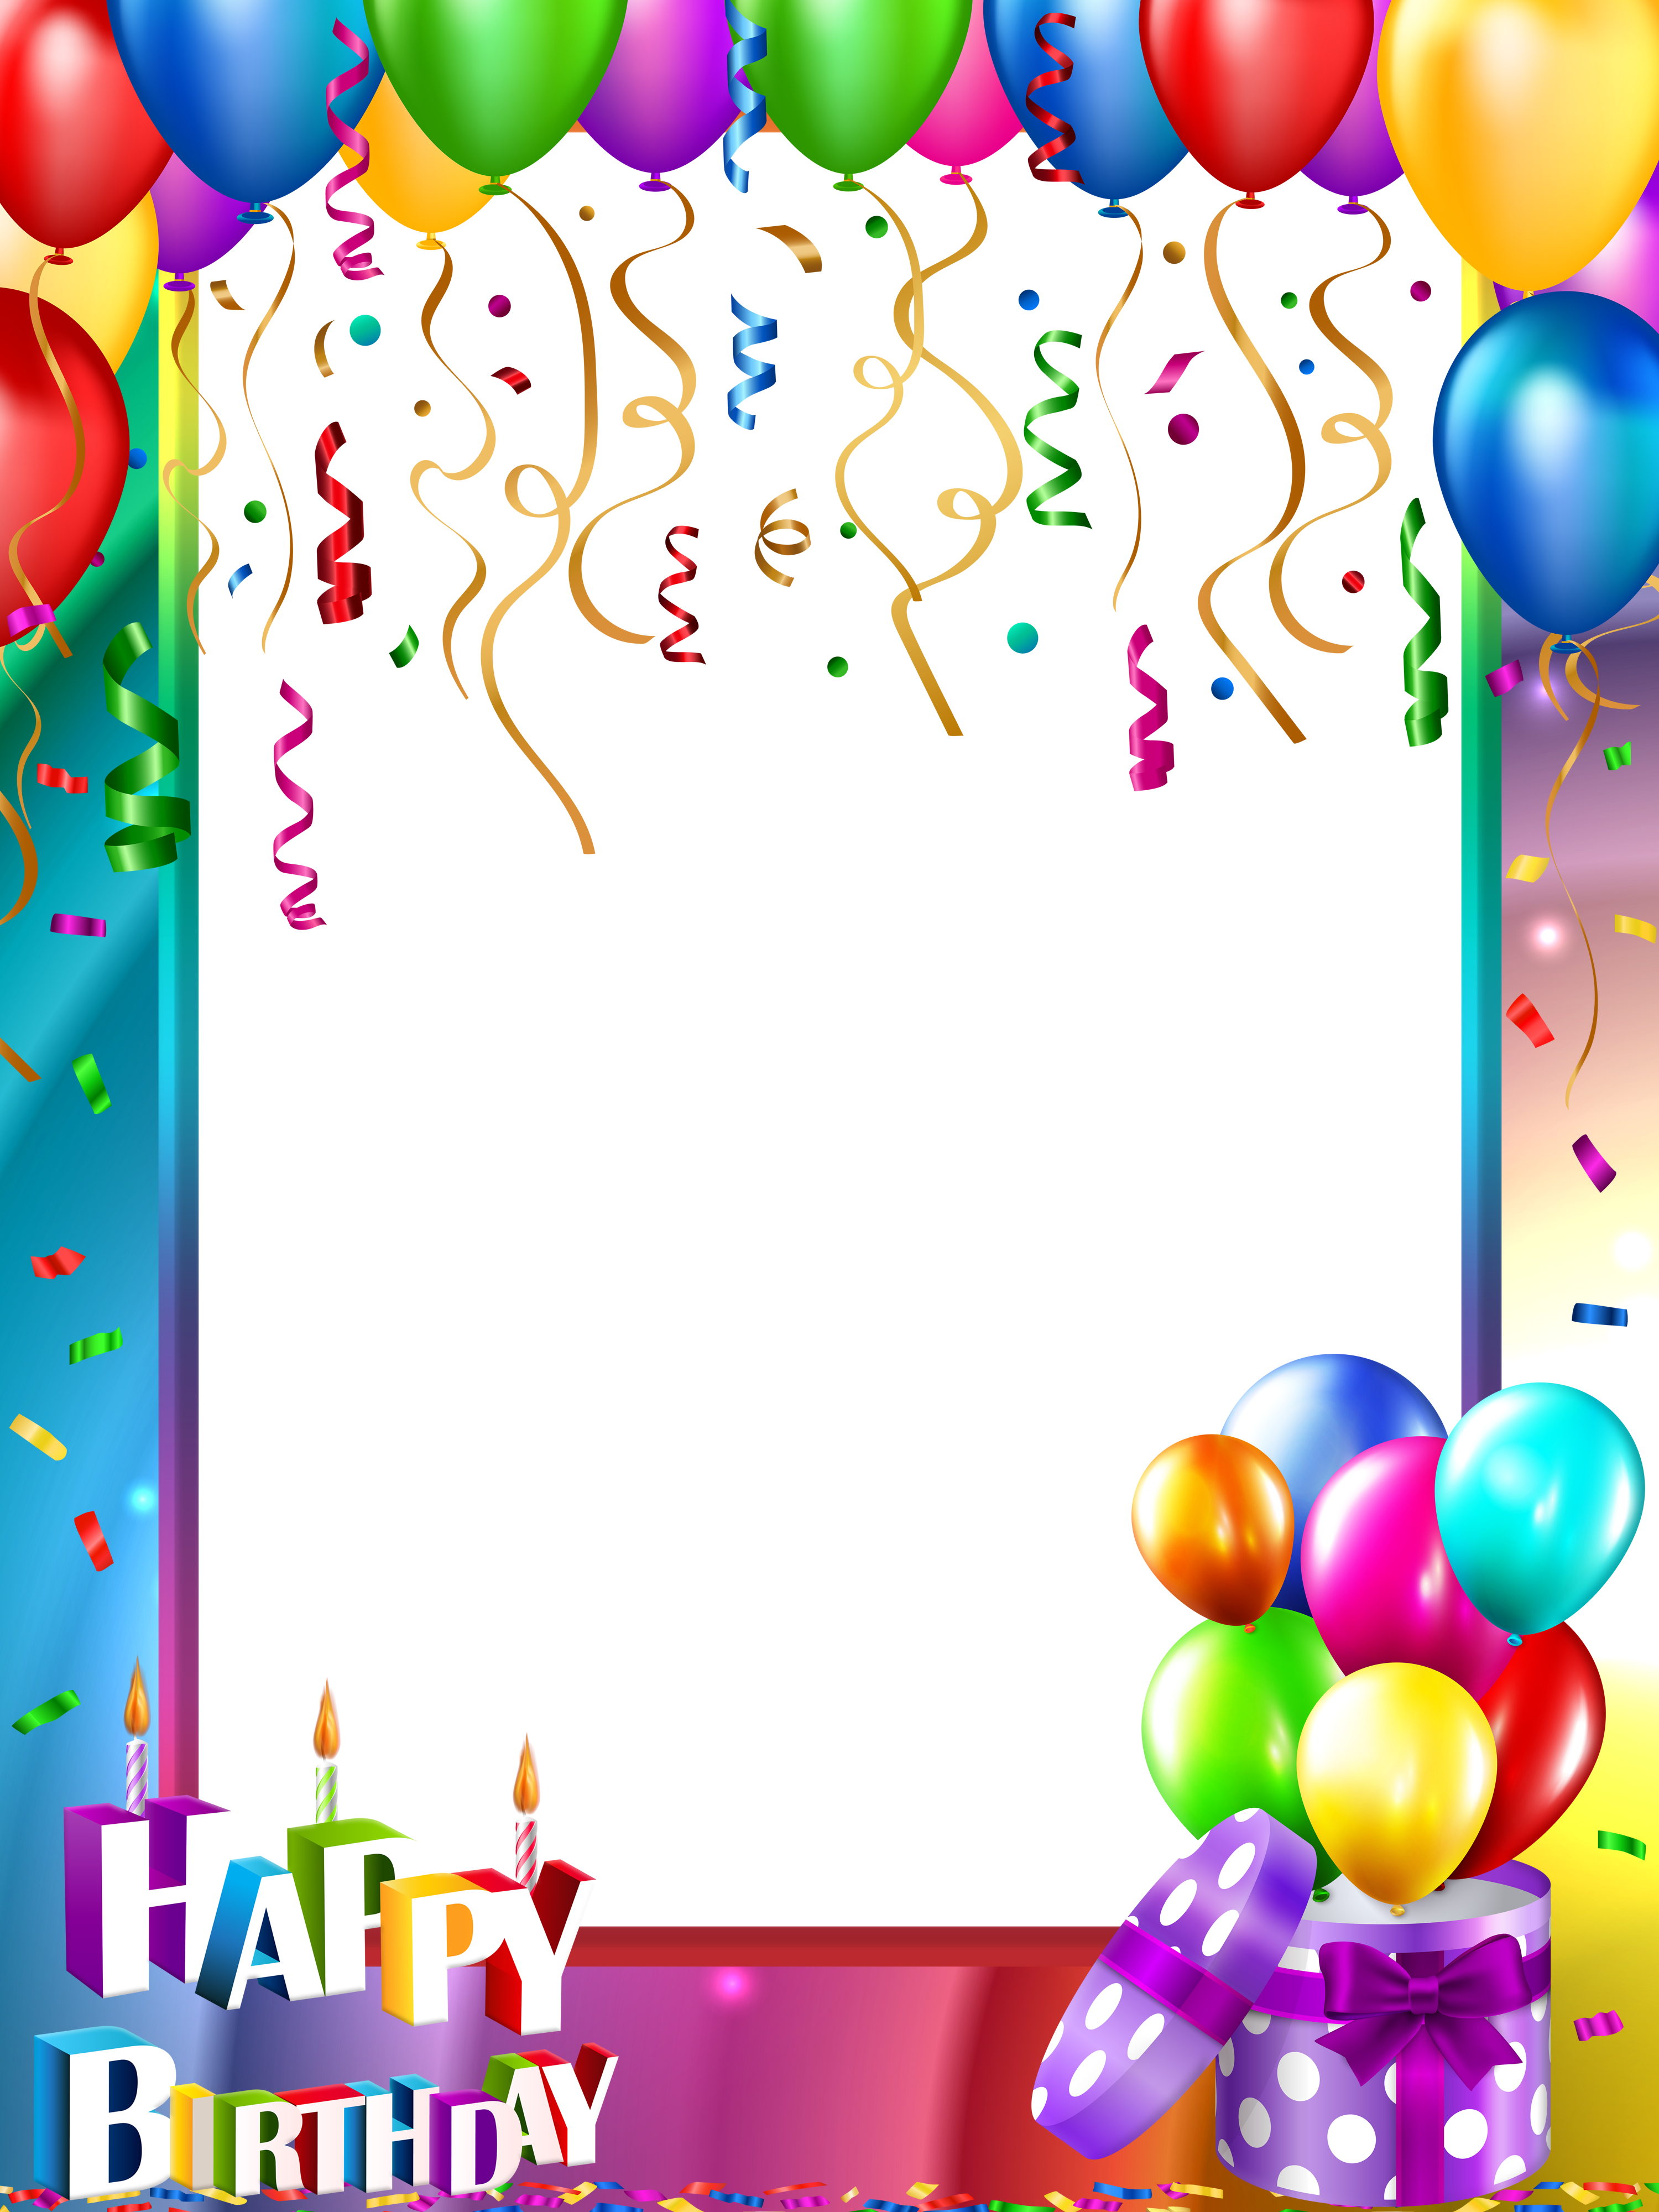 Happy birthday png transparent. Positive clipart denotation